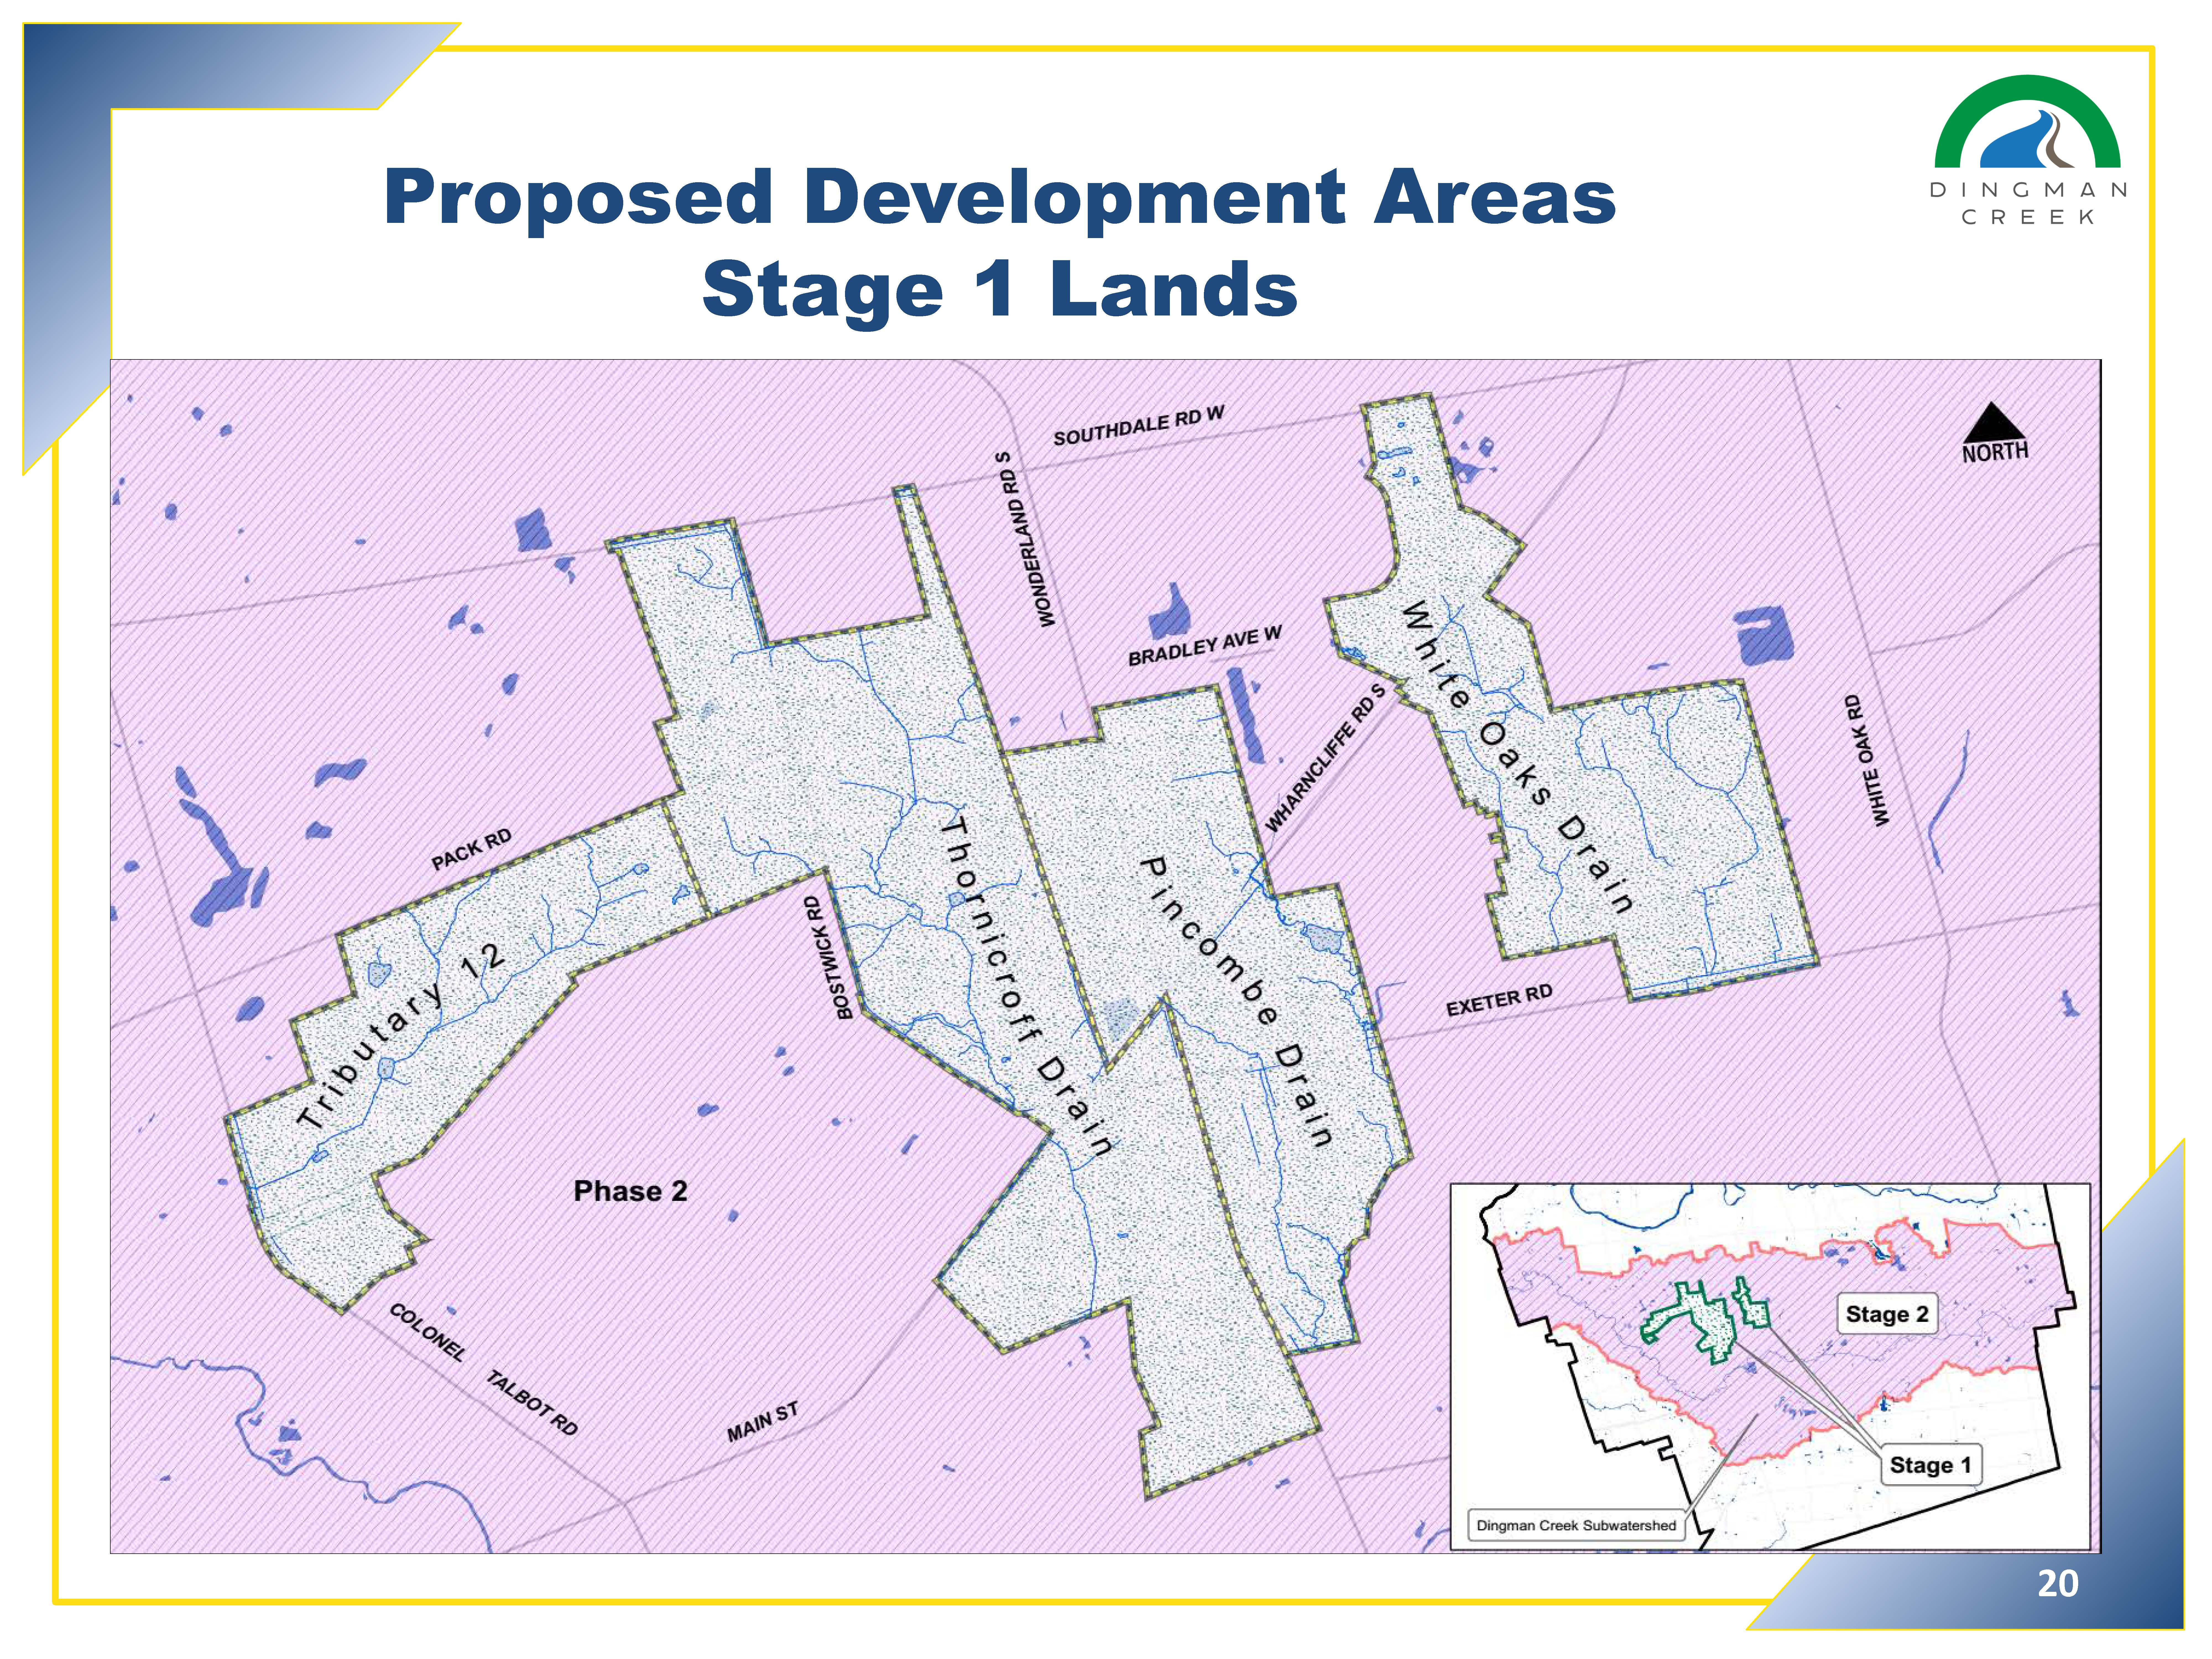 Proposed Development Areas Stage 1 Lands